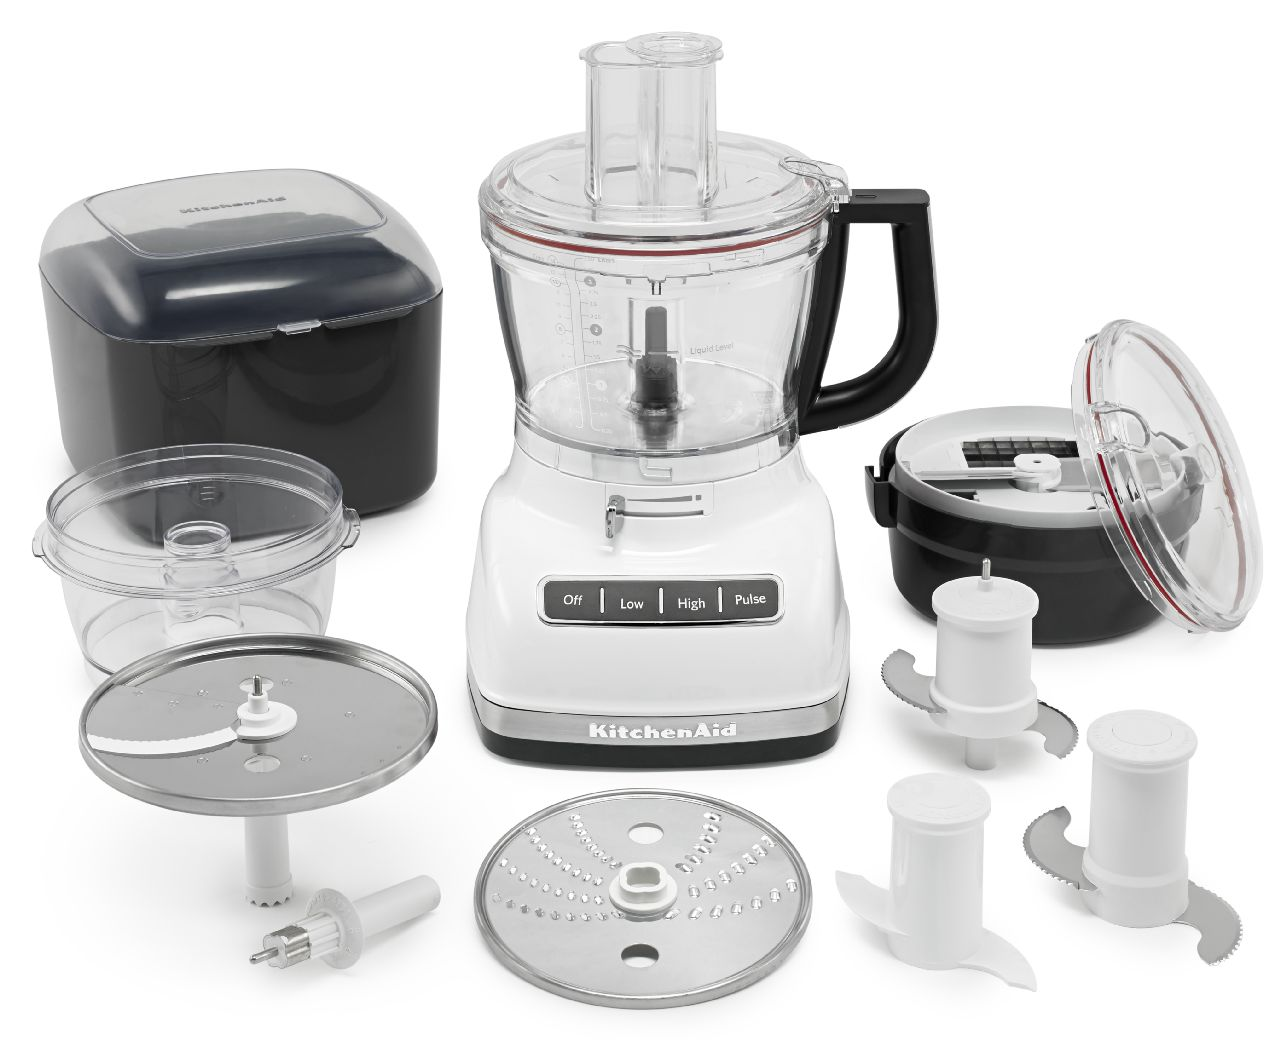 KitchenAid-14-Cup-Food-Processor-with-Commercial-Style-Dicing-Kit-KFP1466 thumbnail 11